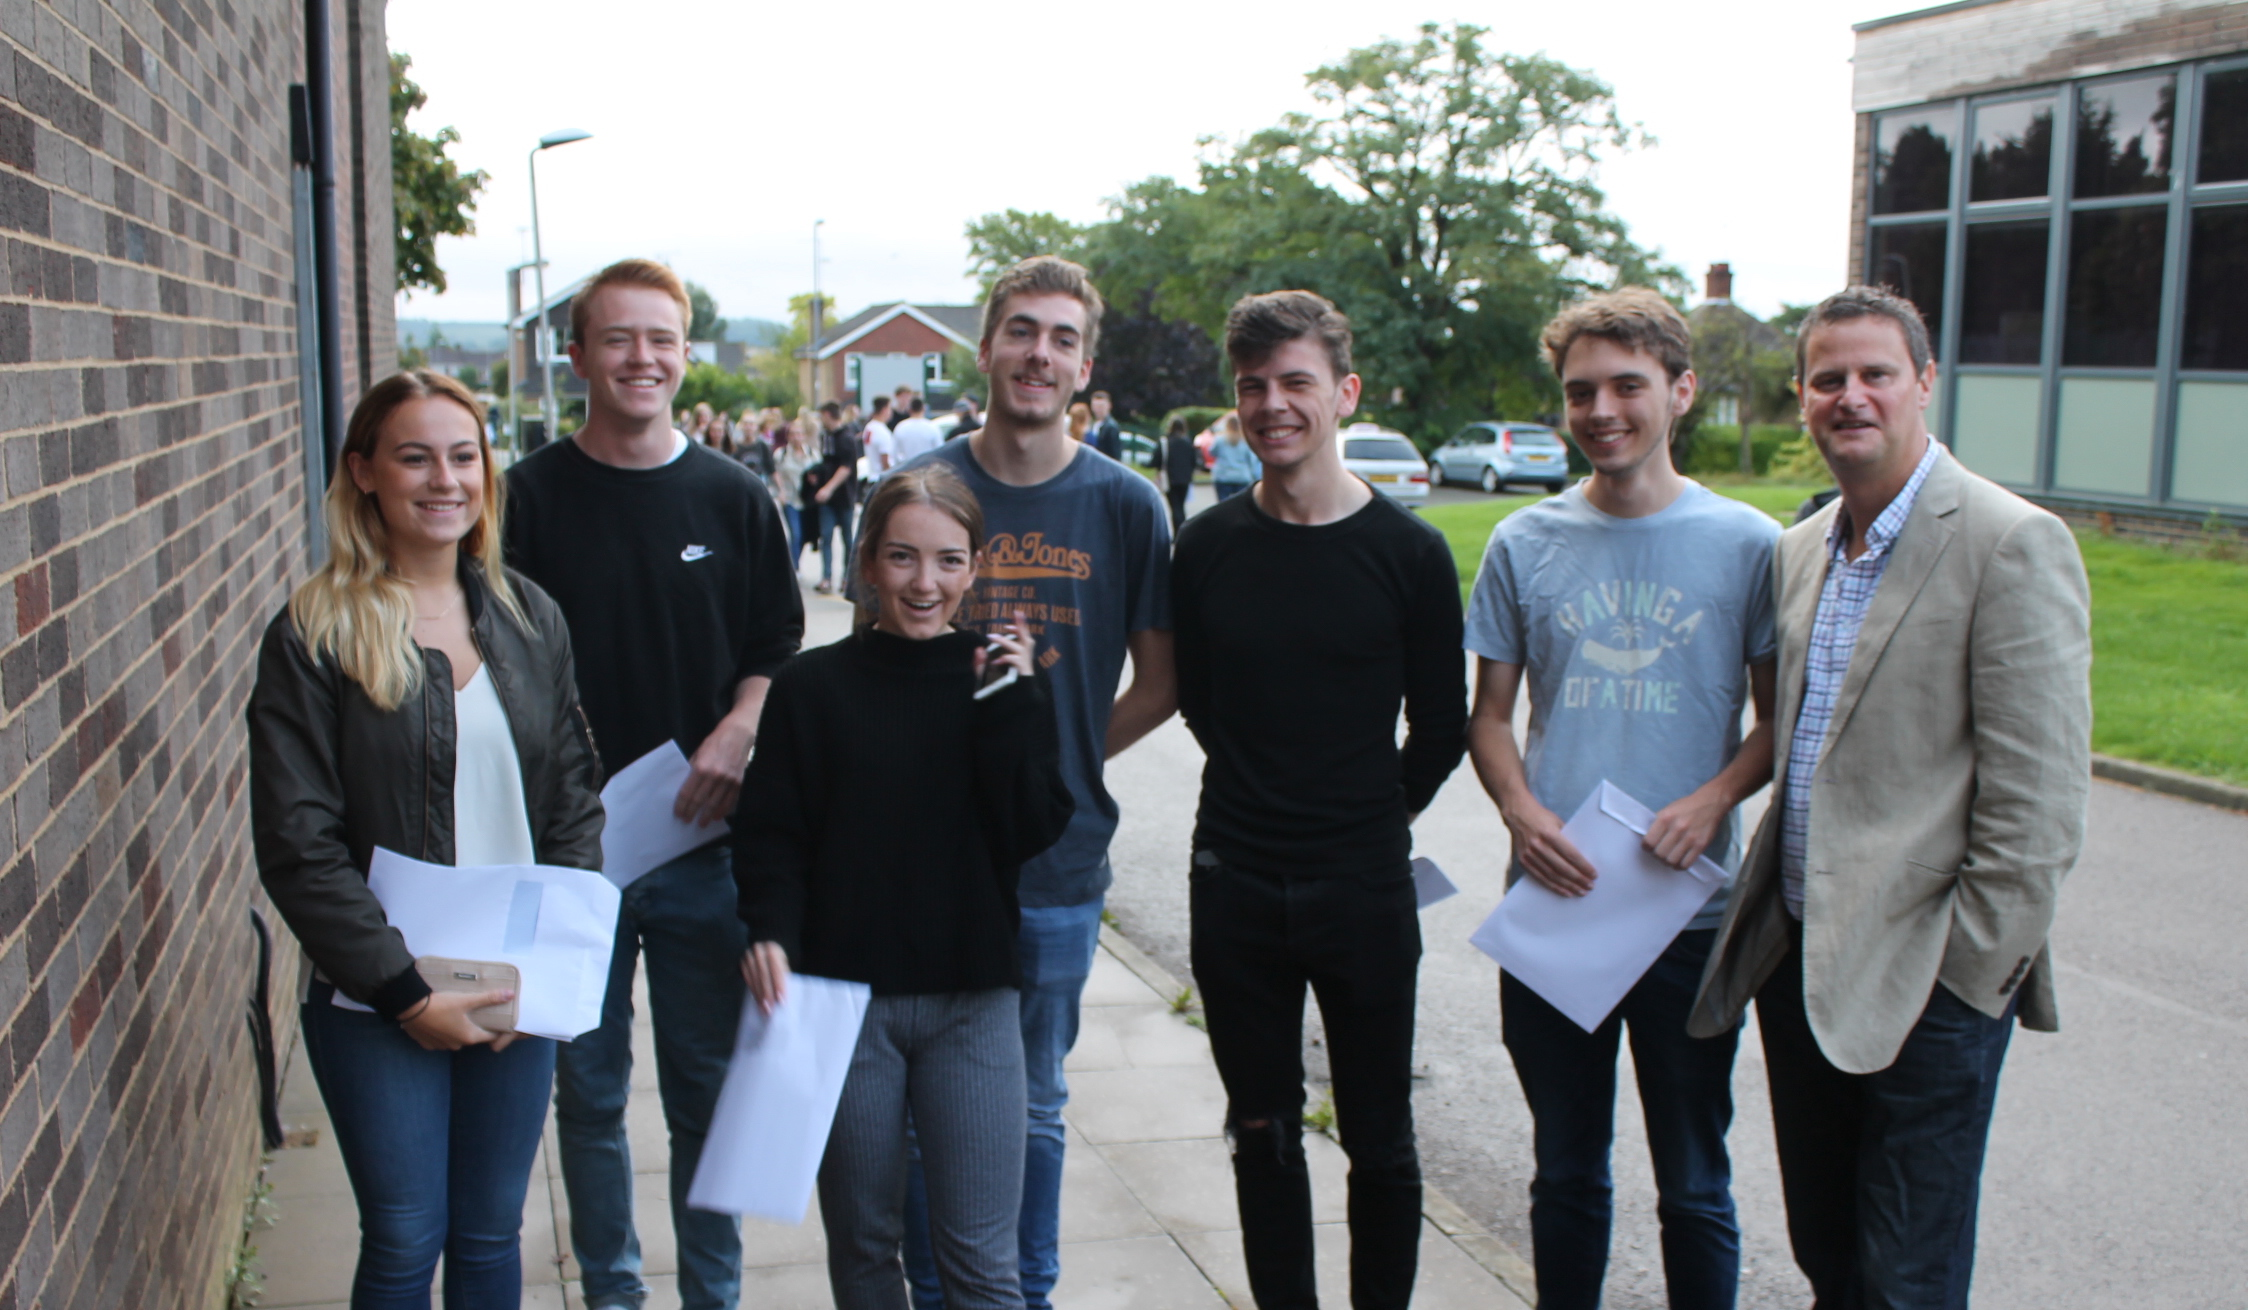 Amy Hayward, Asher Winter, Gina Harland, Harry Thompson, James Milsom, Fergus Longley celebrate their A-Level Results with Principal Richard Taylor